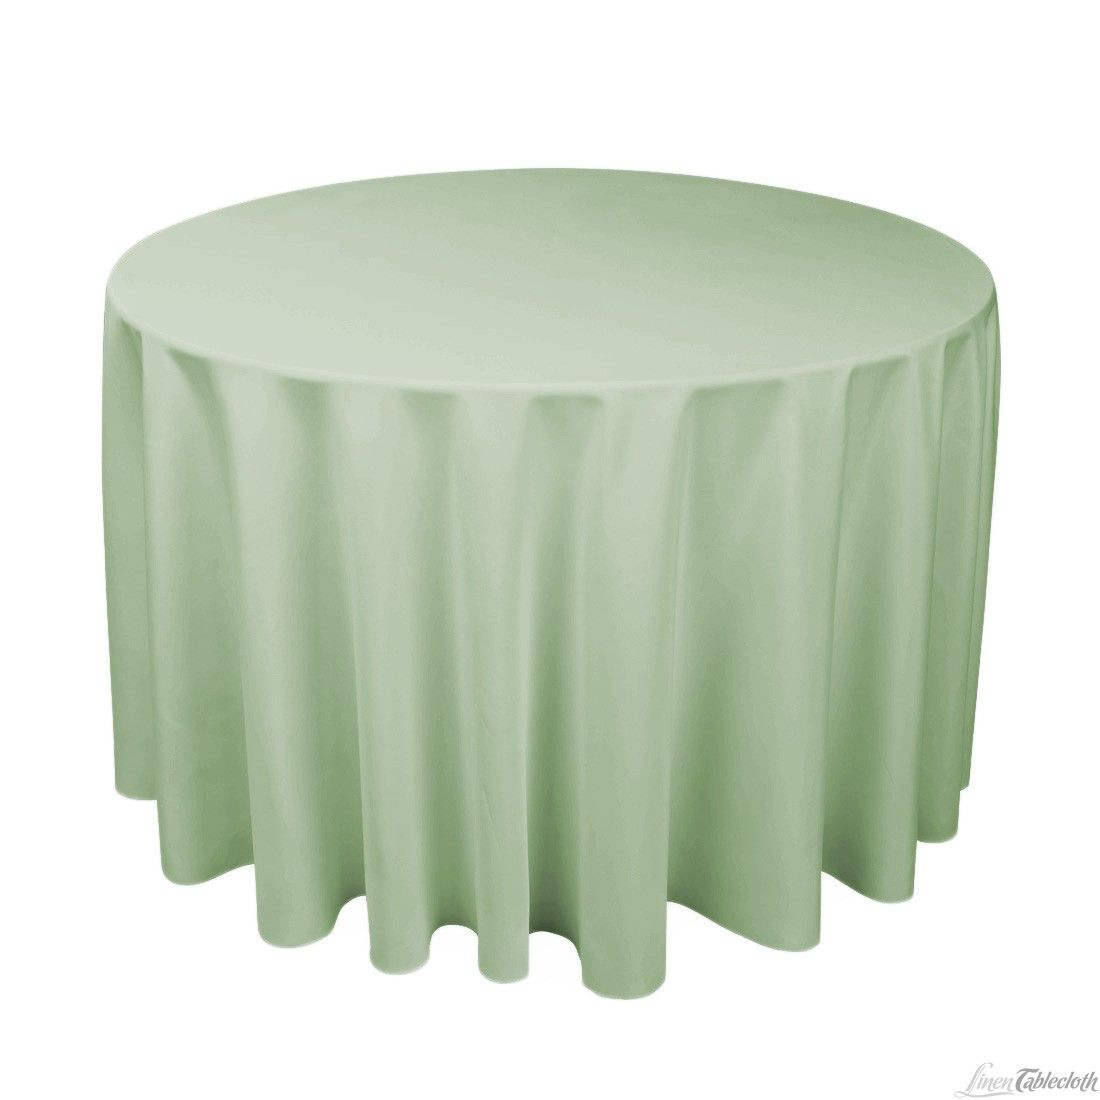 Buy 108 Inch Round Sage Polyester Tablecloth For Weddings At Linentablecloth Seamless And Machine Washable Table Table Cloth Table Linens Wedding Tablecloths